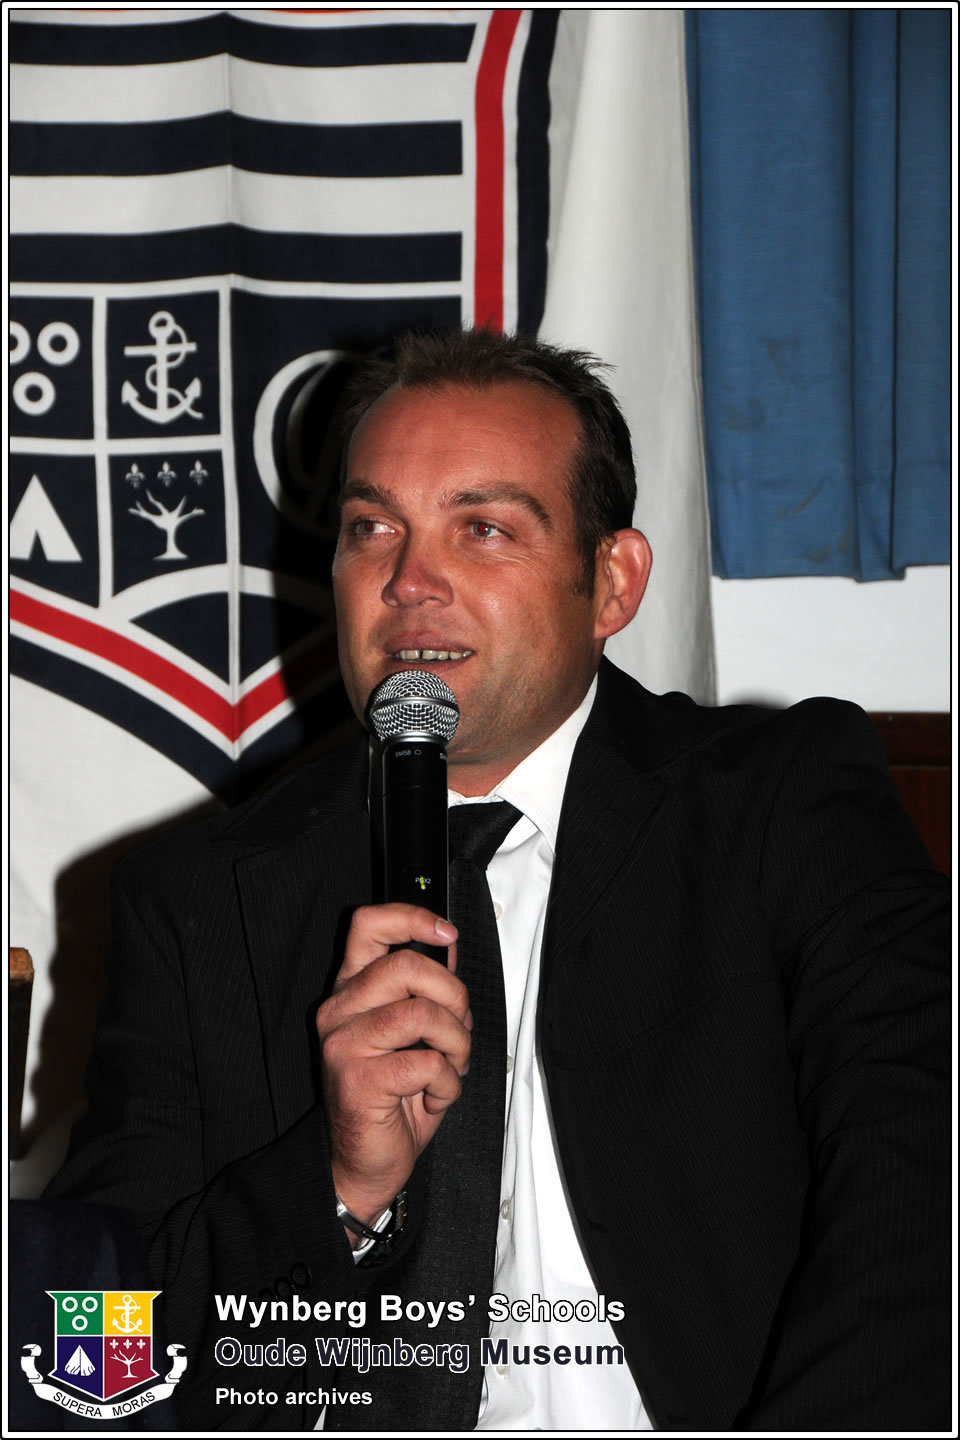 2009: Guest Speaker at the annual Old boys' Dinner